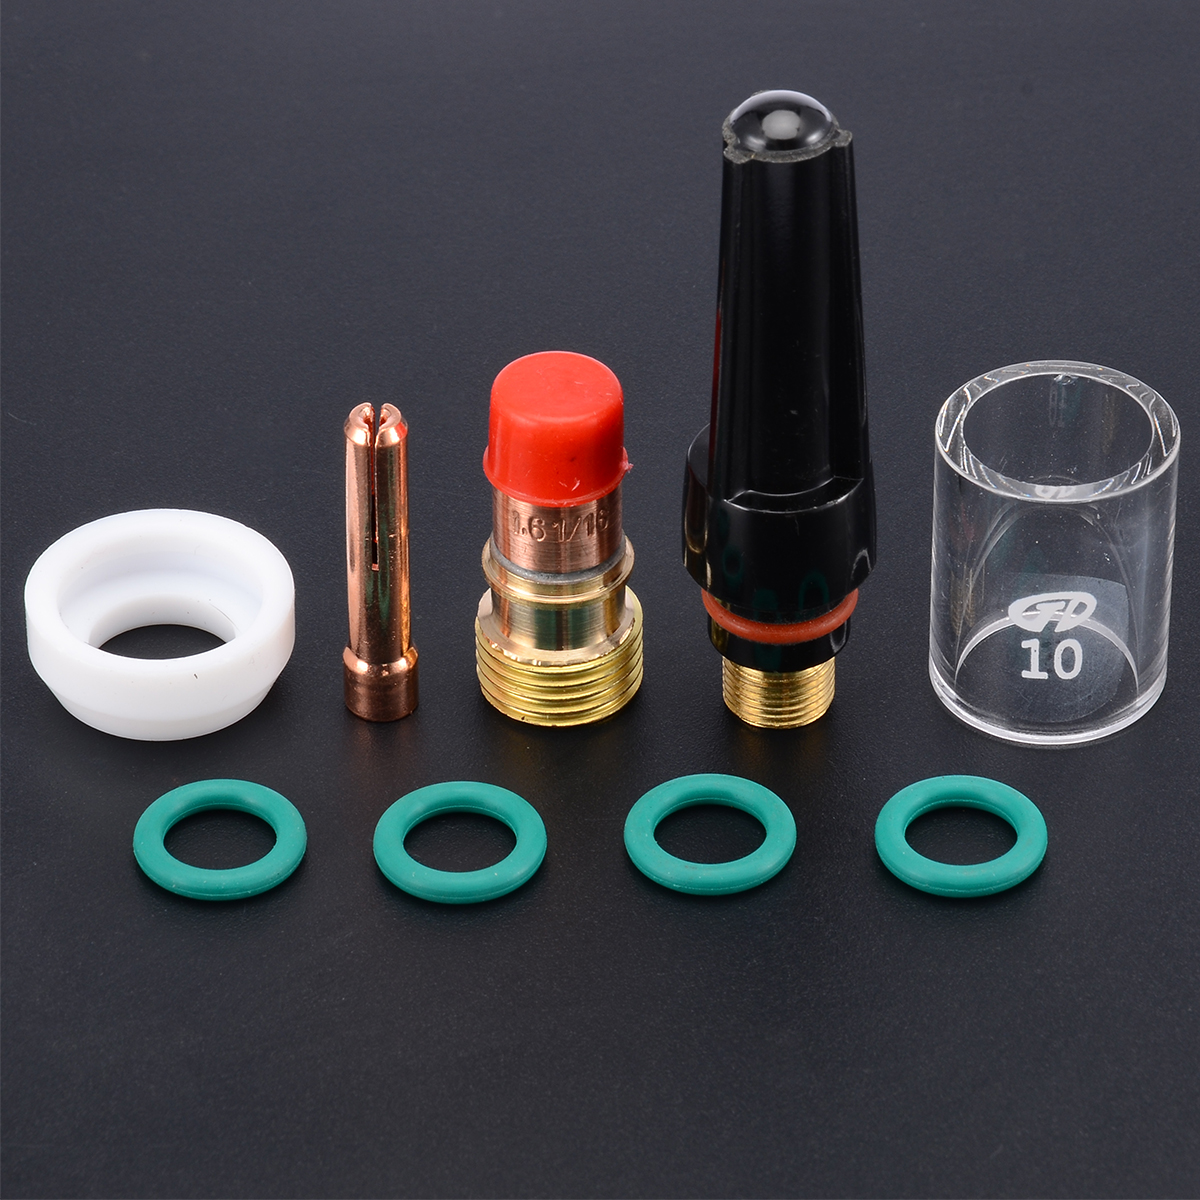 9Pcs 1.6mm Welding Torch TIG Gas Lens Glass Cup Kit With O-rings  Collet Nozzle Kit For WP-17/18/26 1/16''  TIG Welding Torch